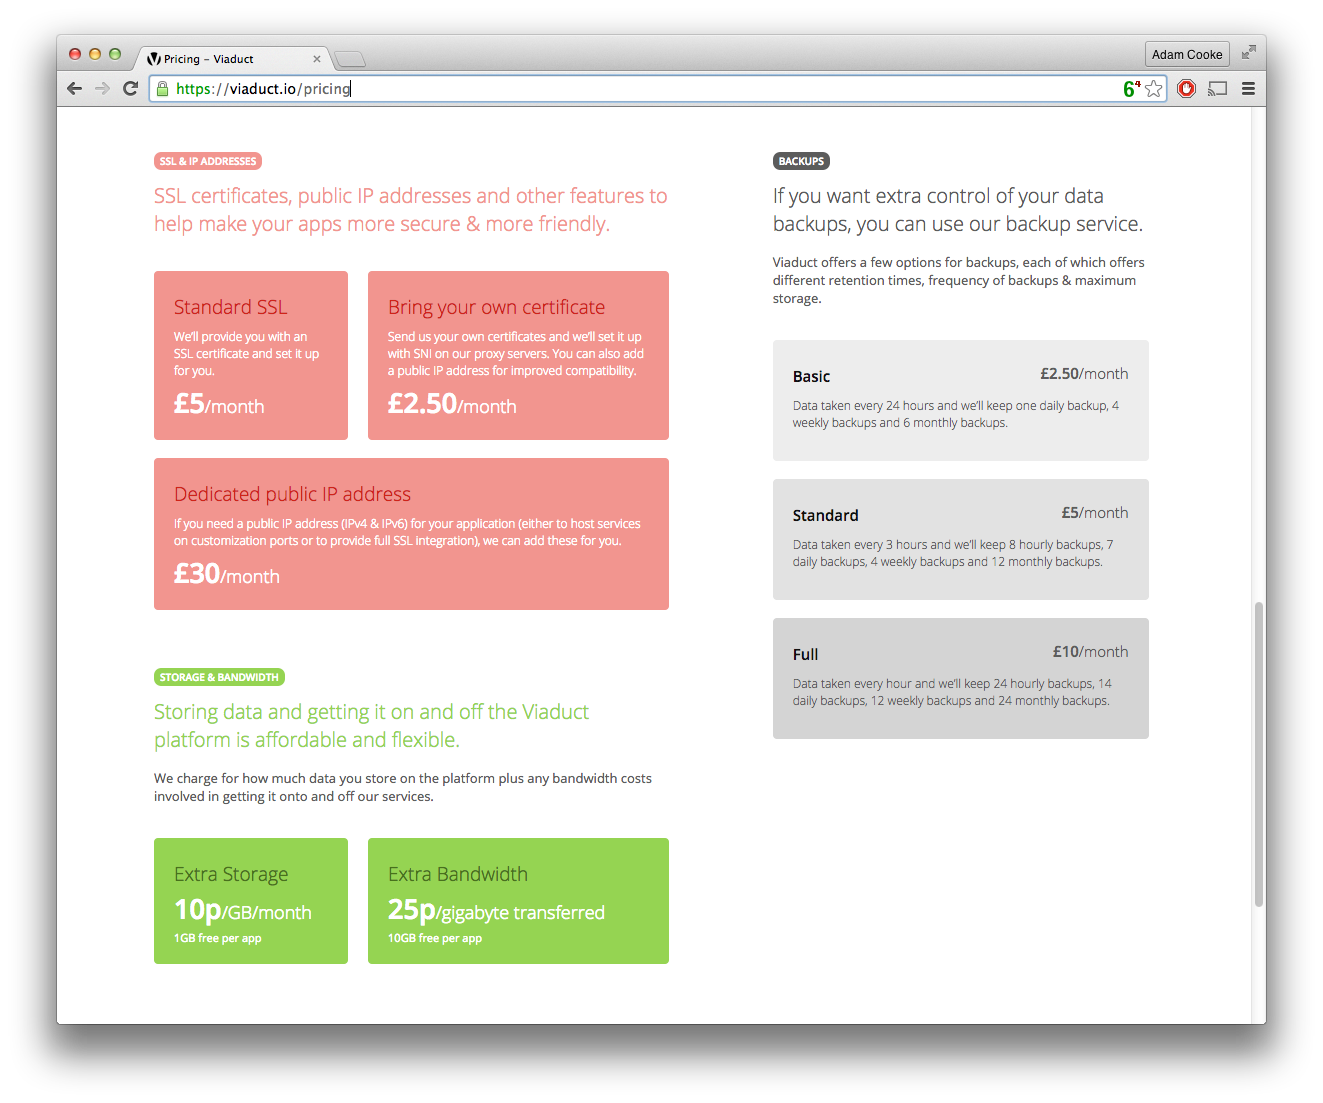 Lovely new pricing page